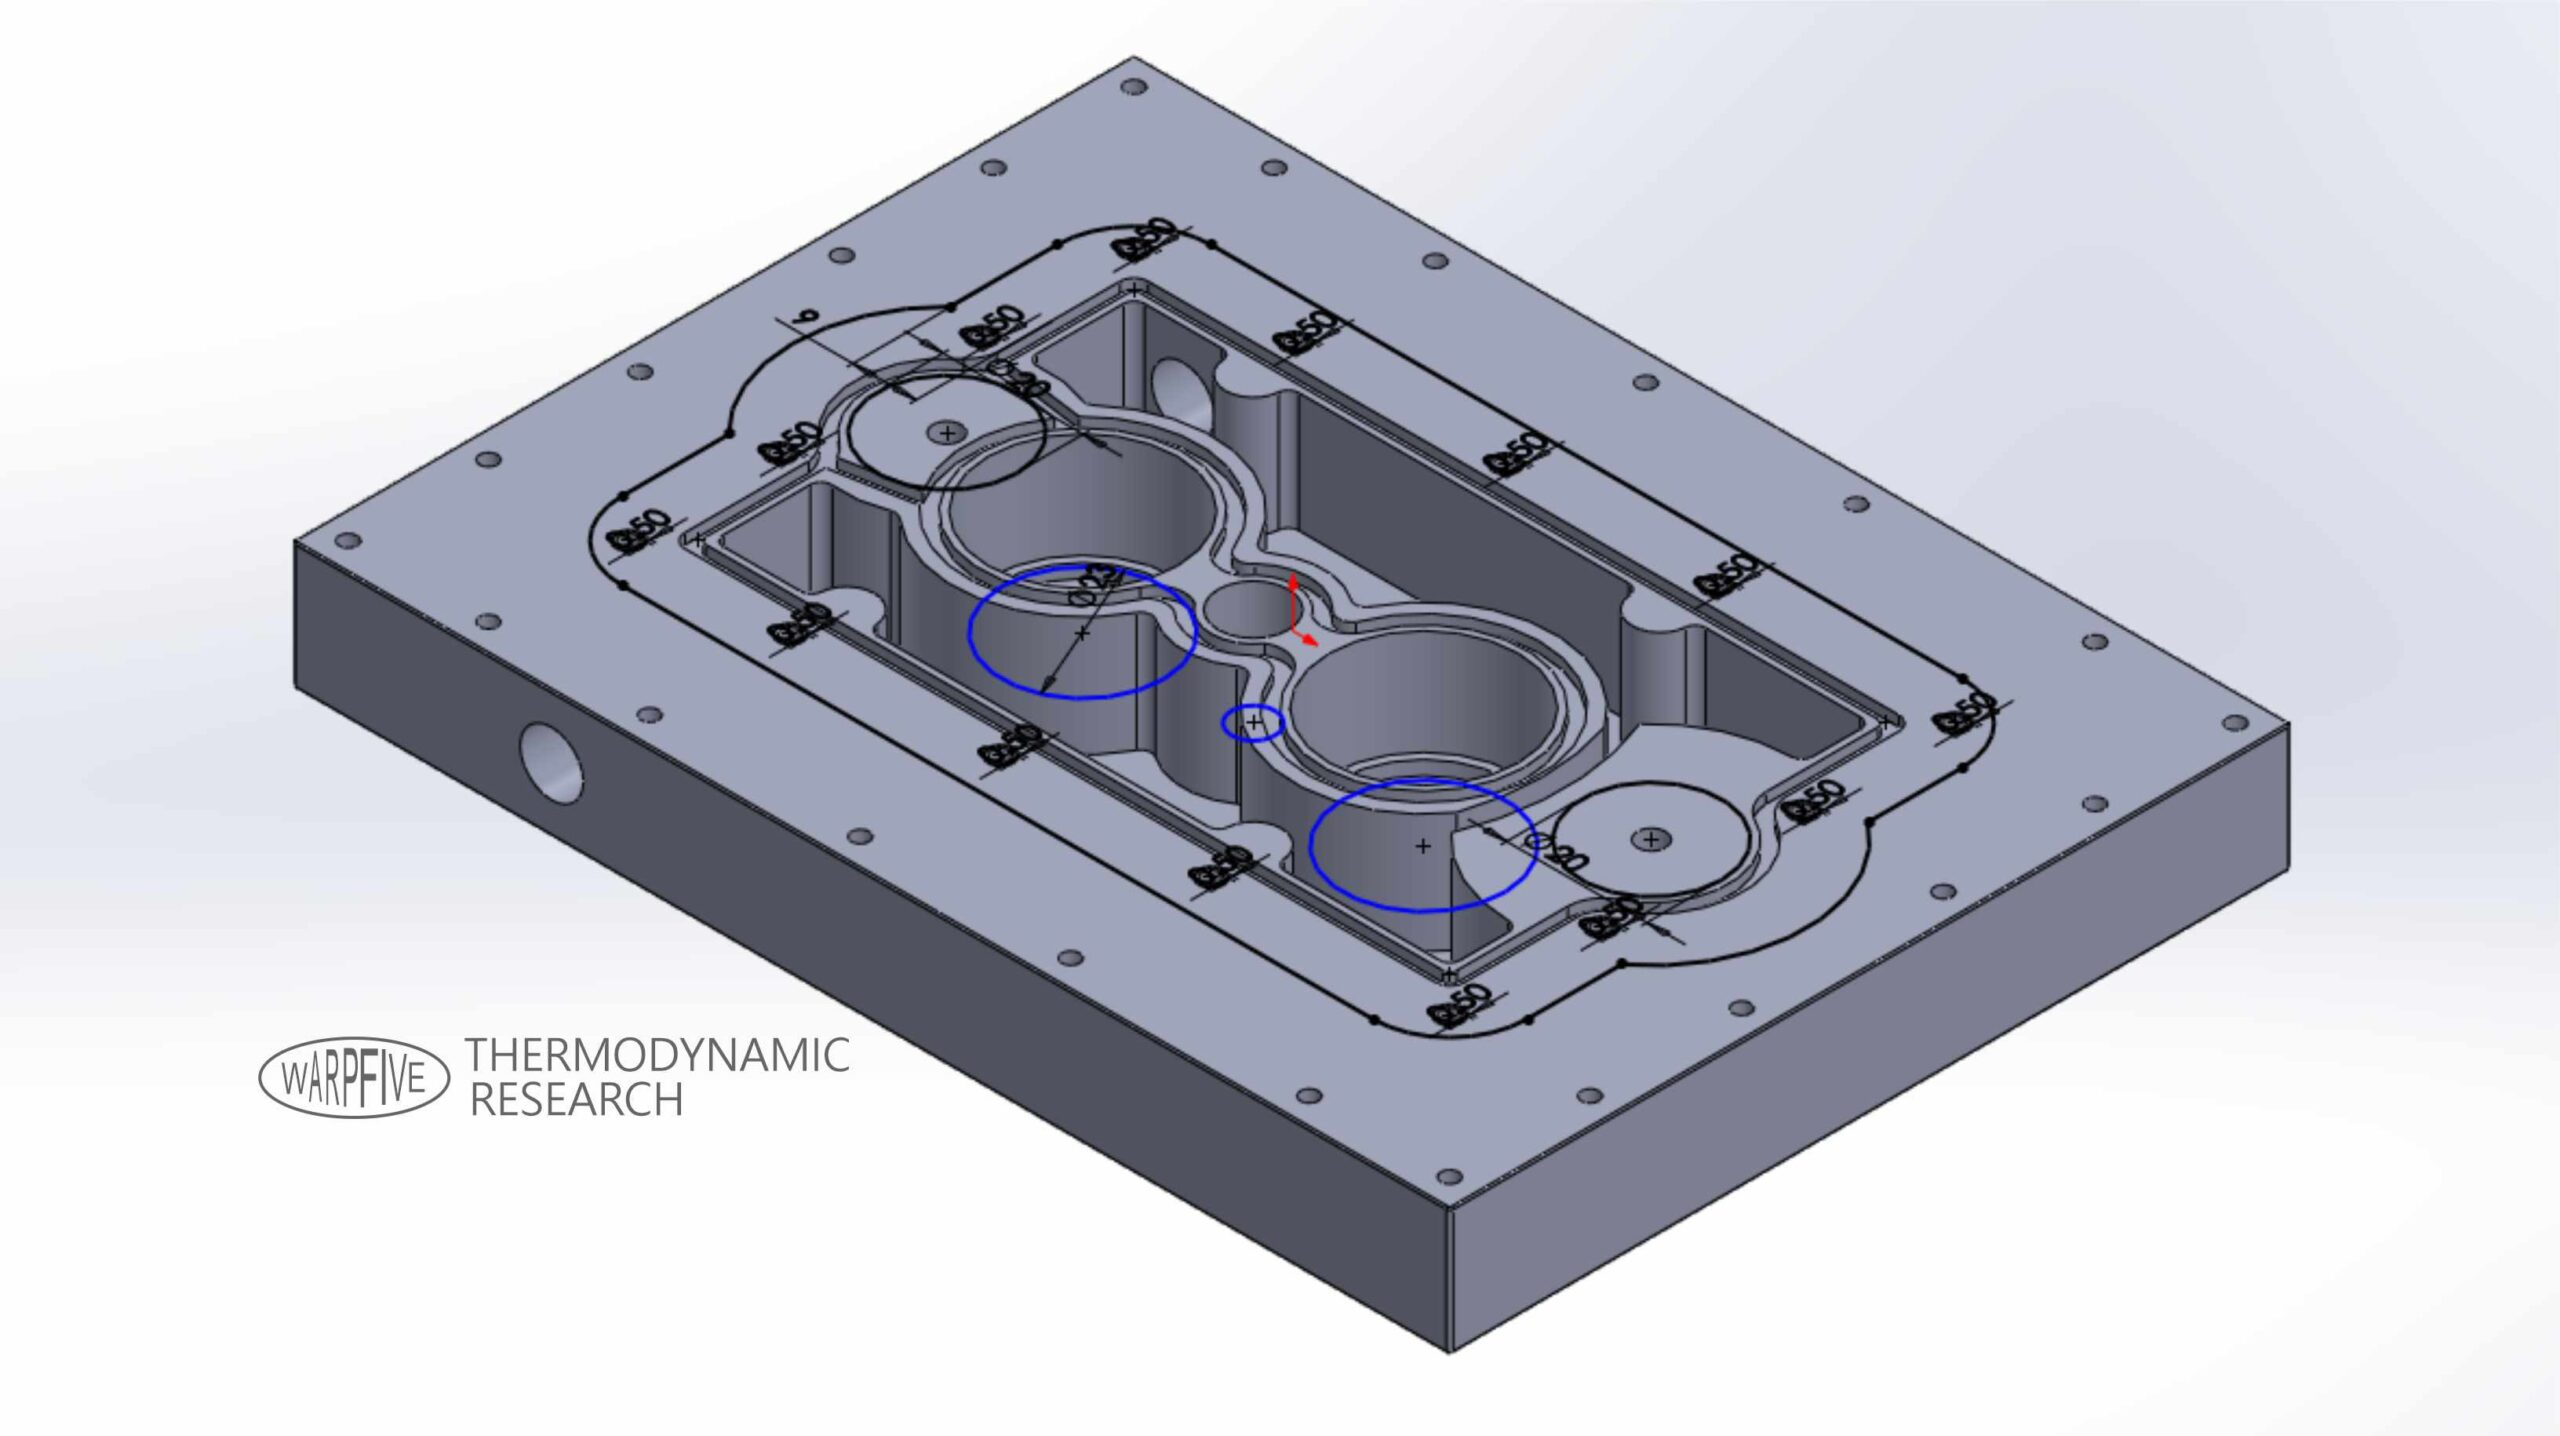 Warpfive Stirling engine heat exchanger manifold for use with liquid cooling